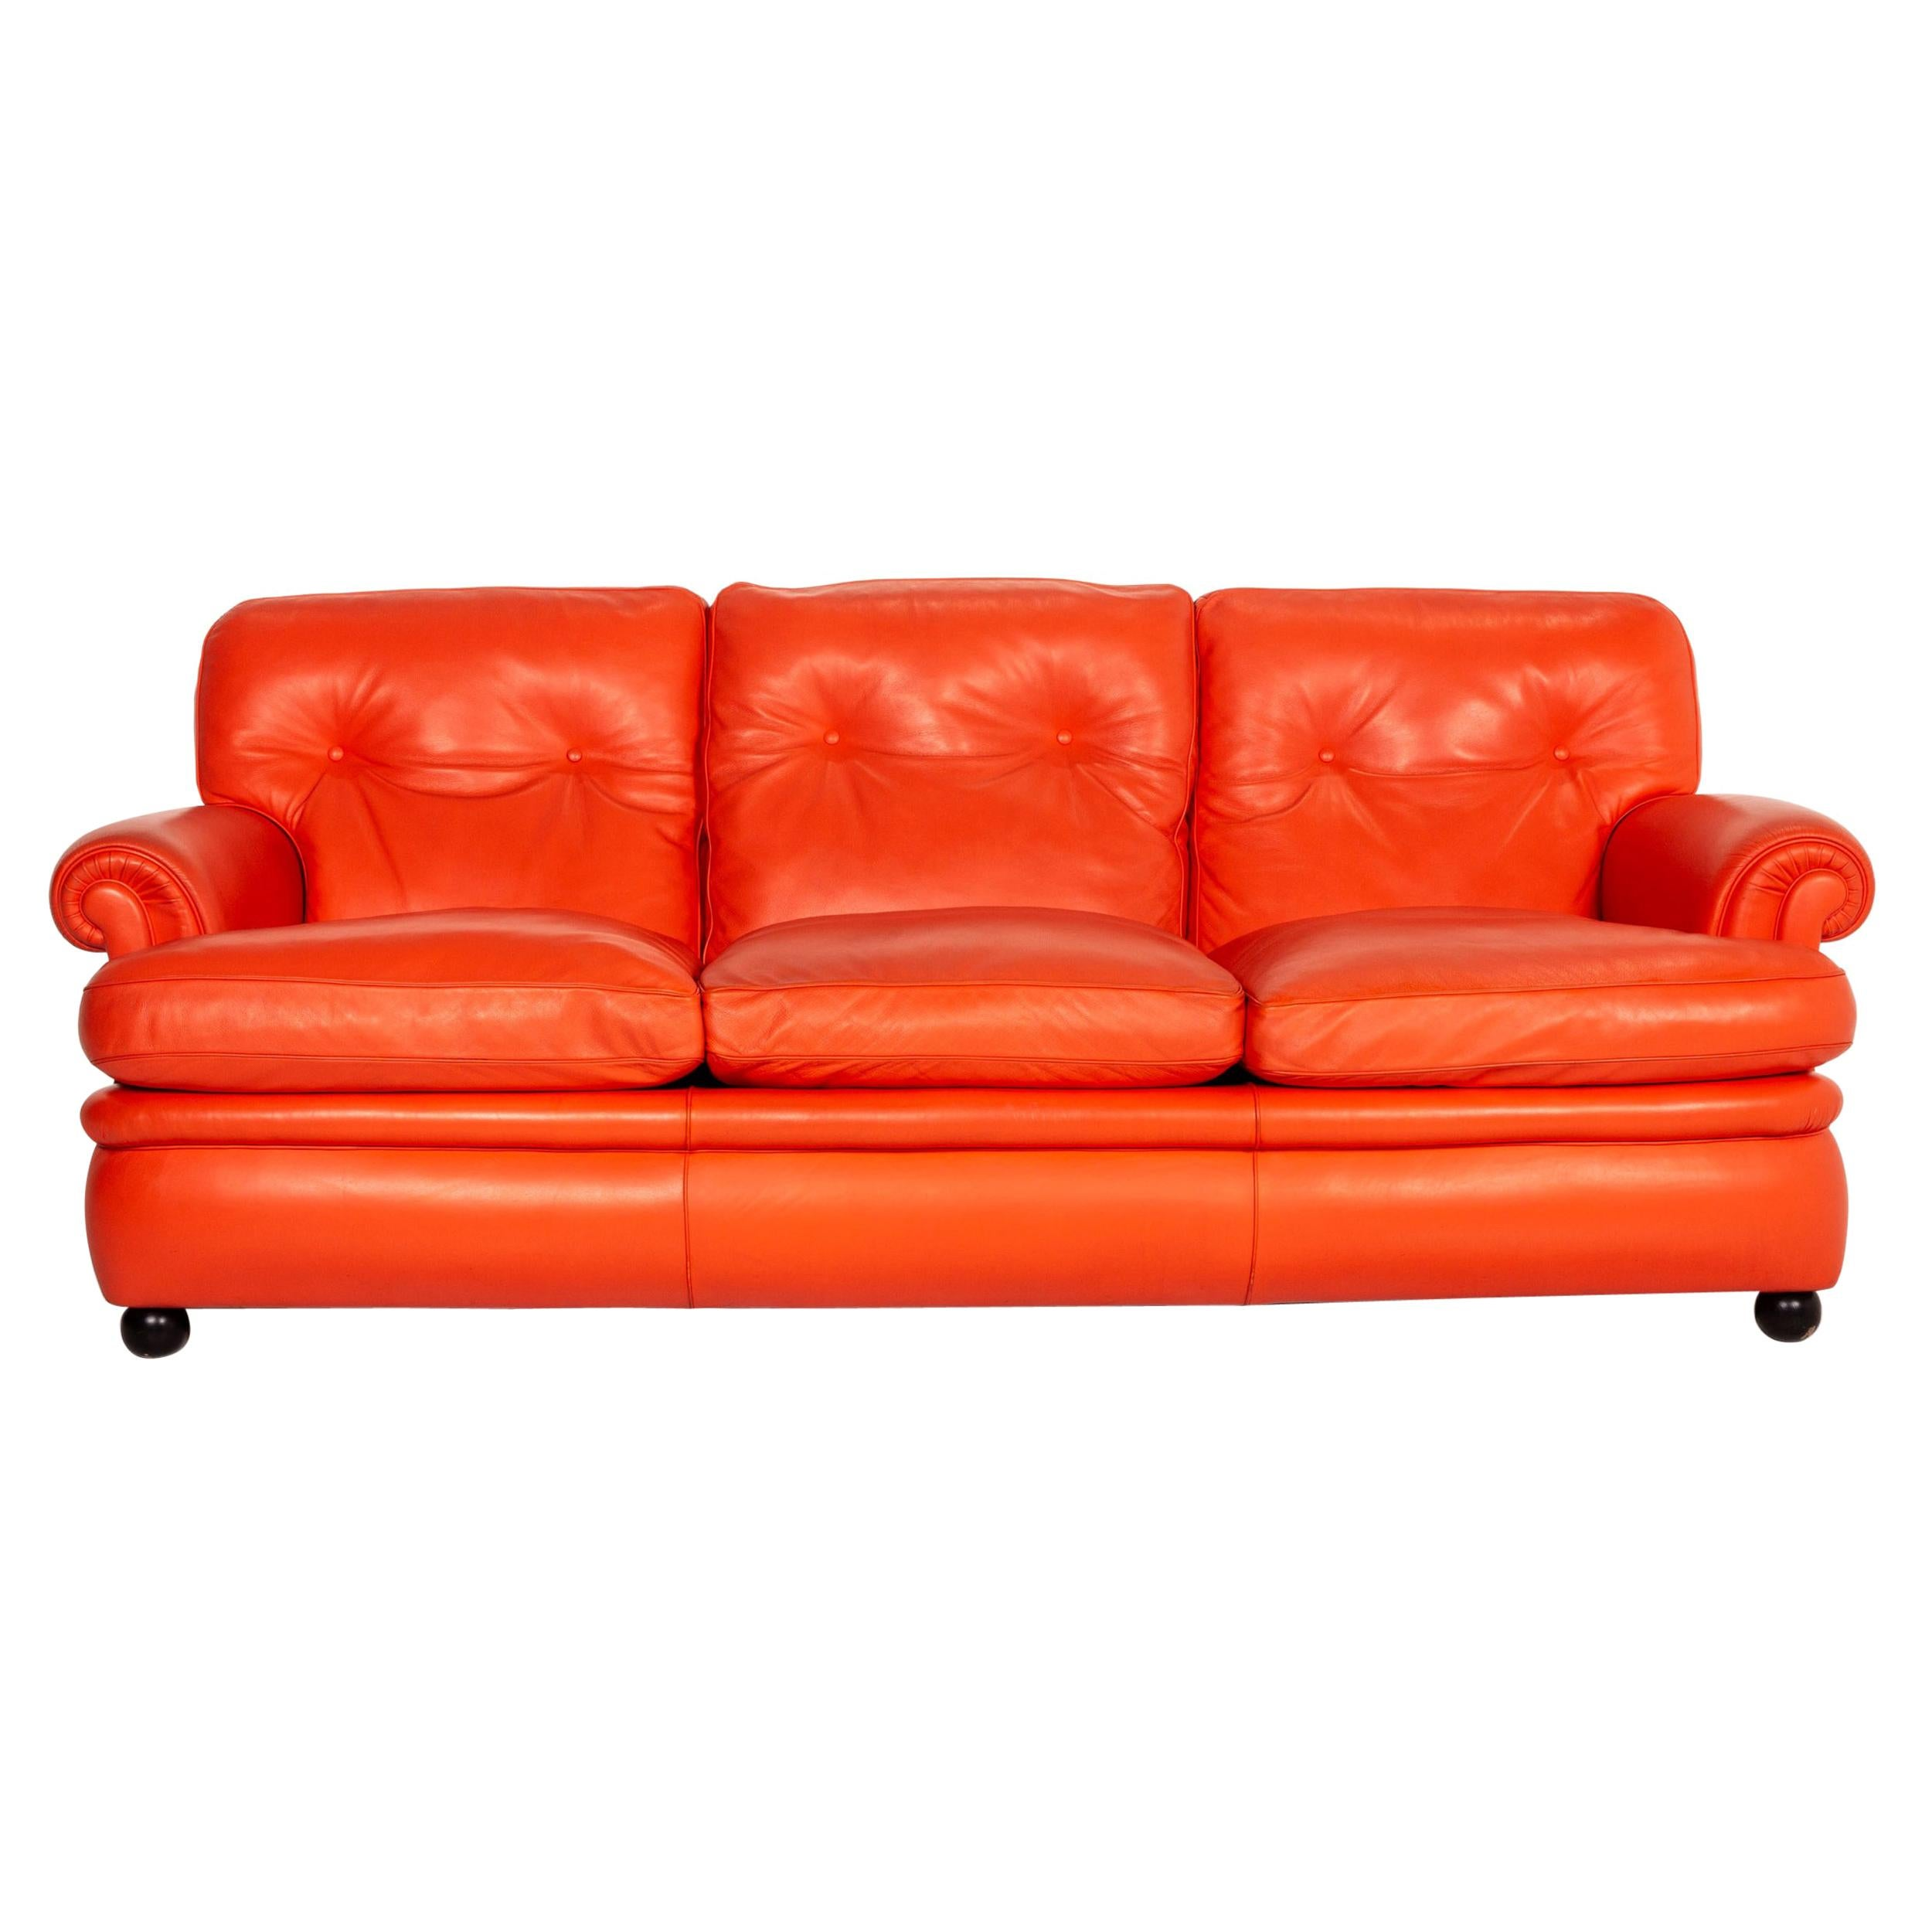 Poltrona Frau Dream on Leather Sofa Coral Orange Chesterfield Sofa Couch